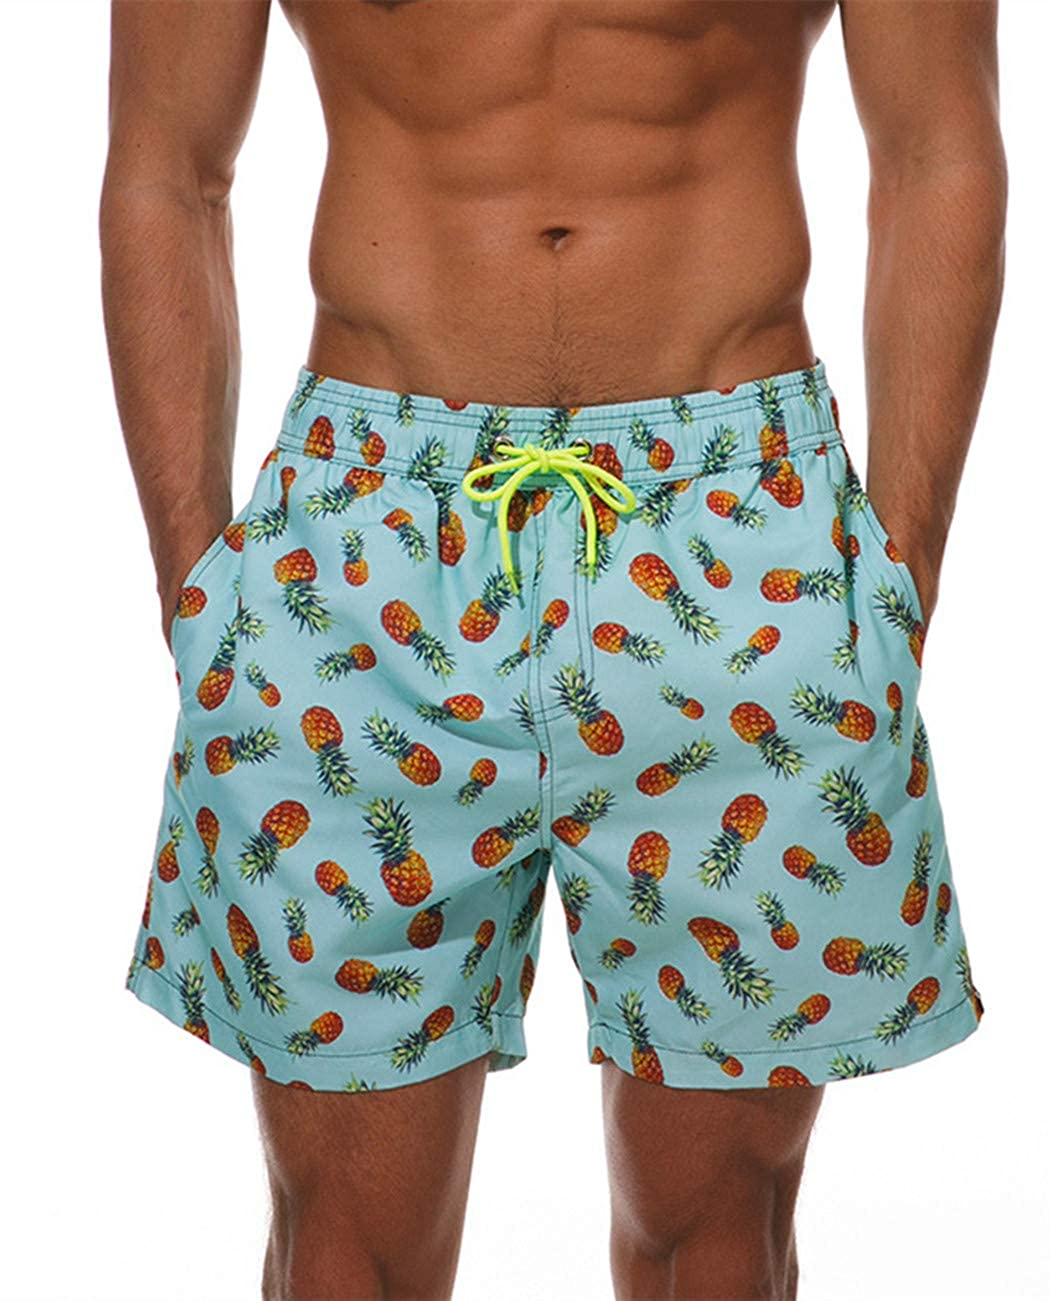 ESCATCH Swimming Trunks Men Surfing Waterproof Beach Shorts with Pockets